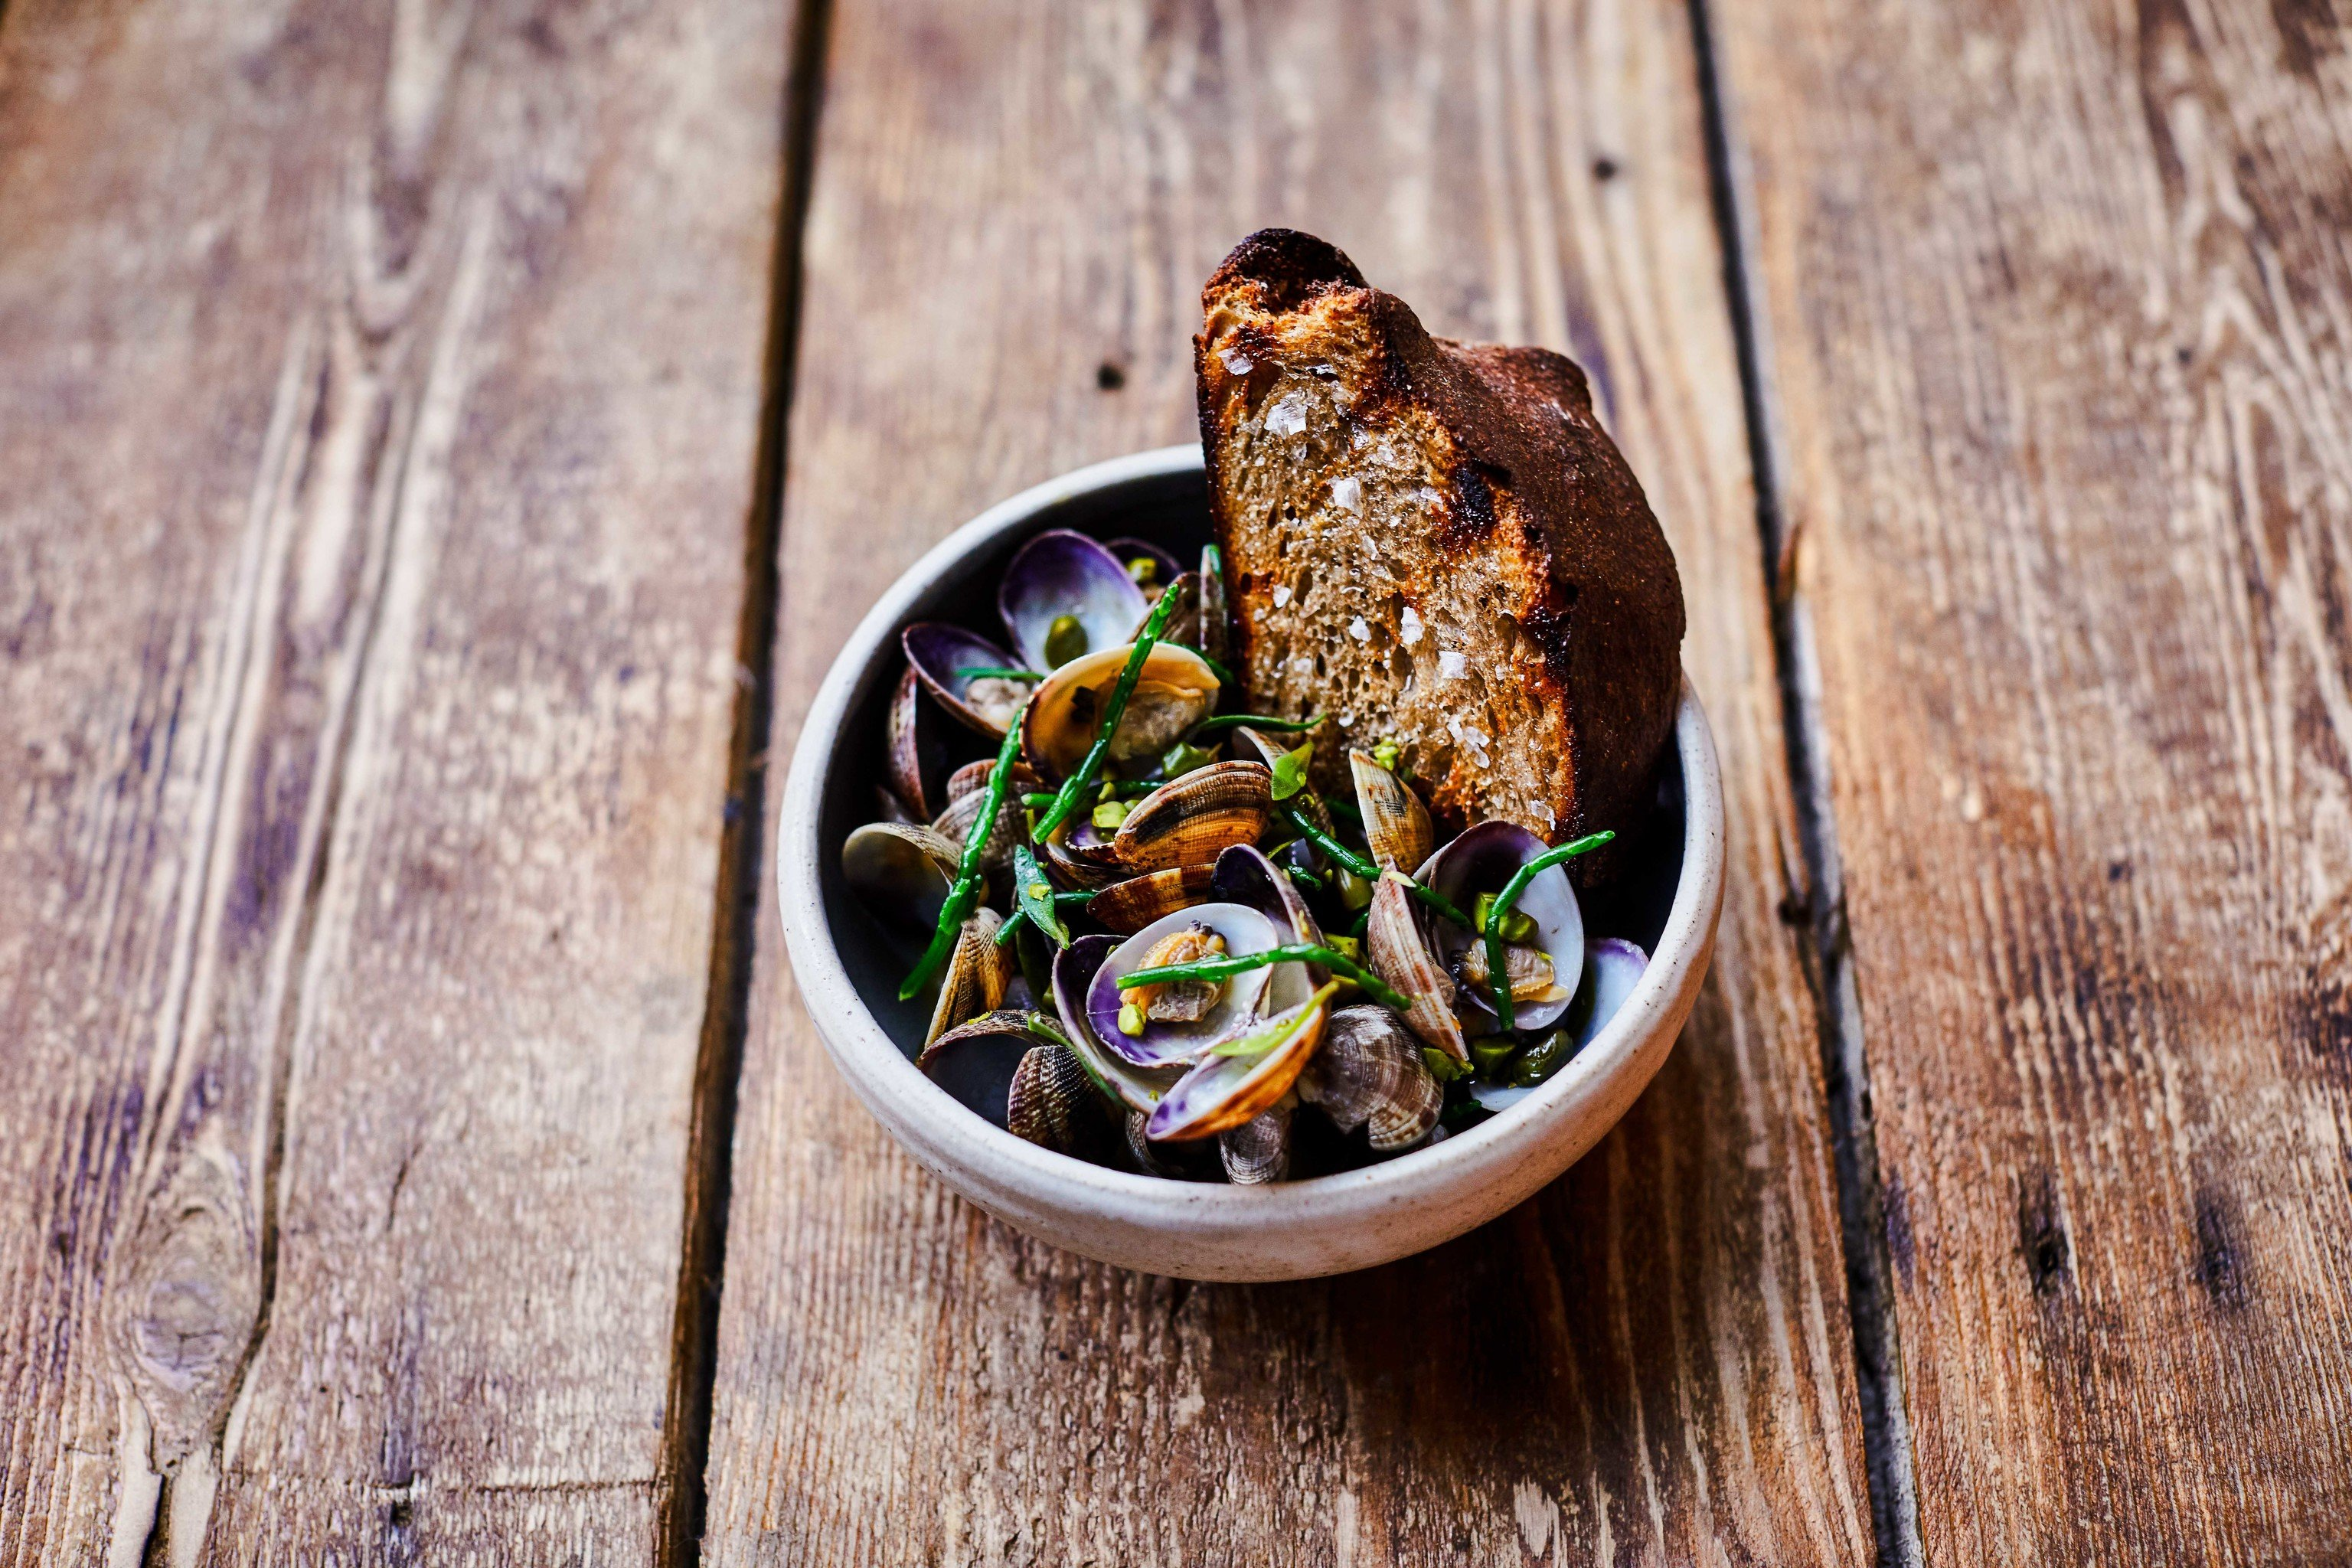 Food + Drink London wooden ground wood dish mussel recipe food meal